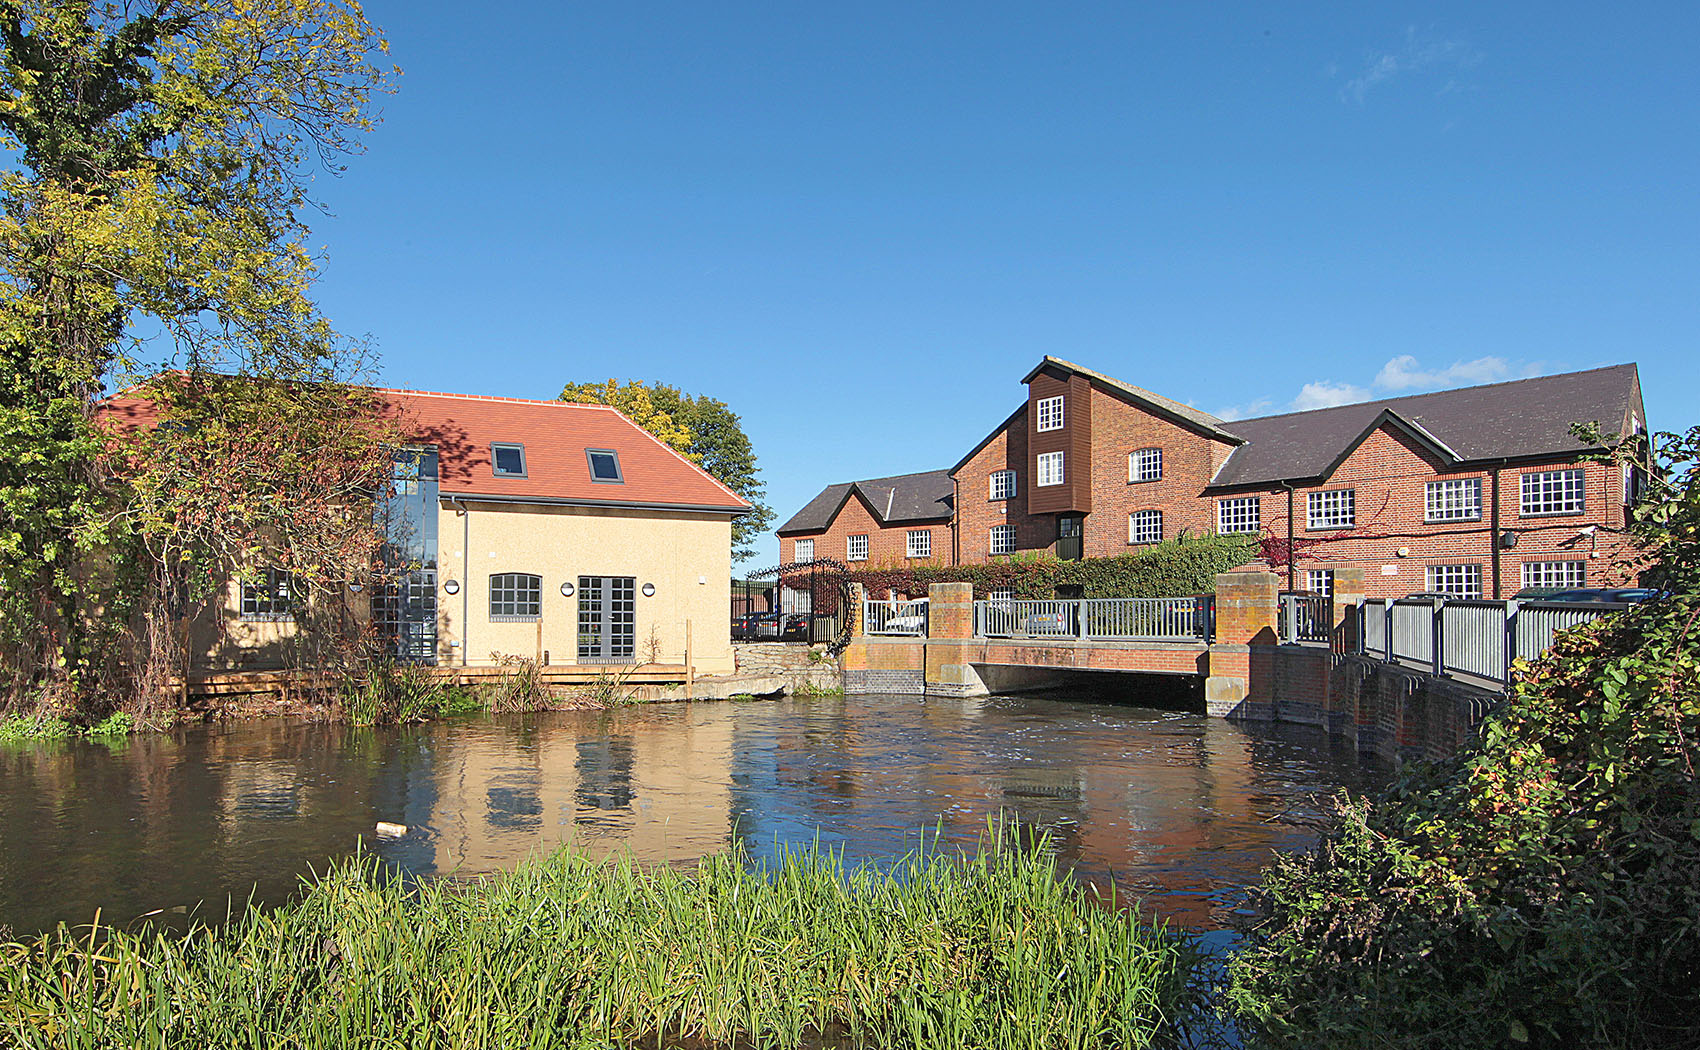 The Mill, Horton Road, Stanwell Moor, Heathrow, TW19 6BJ – A Combination Of Small Managed Offices and Separate Warehouses